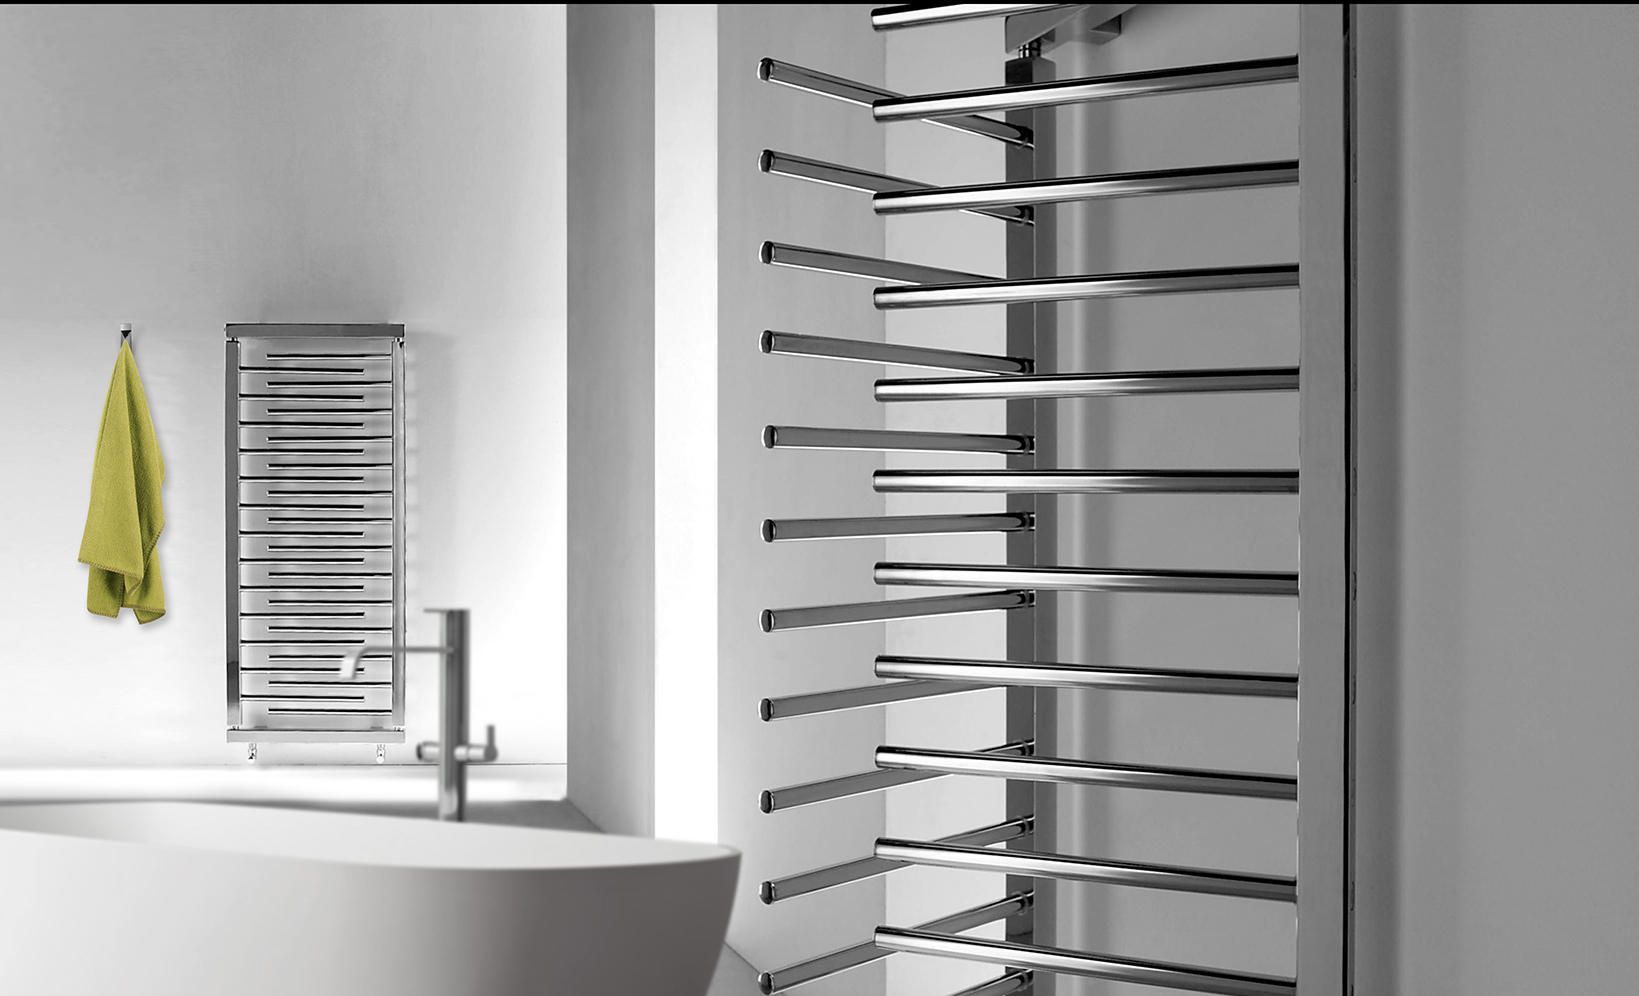 Taosystem radiators deltacalor architonic for Accessori per scaldasalviette